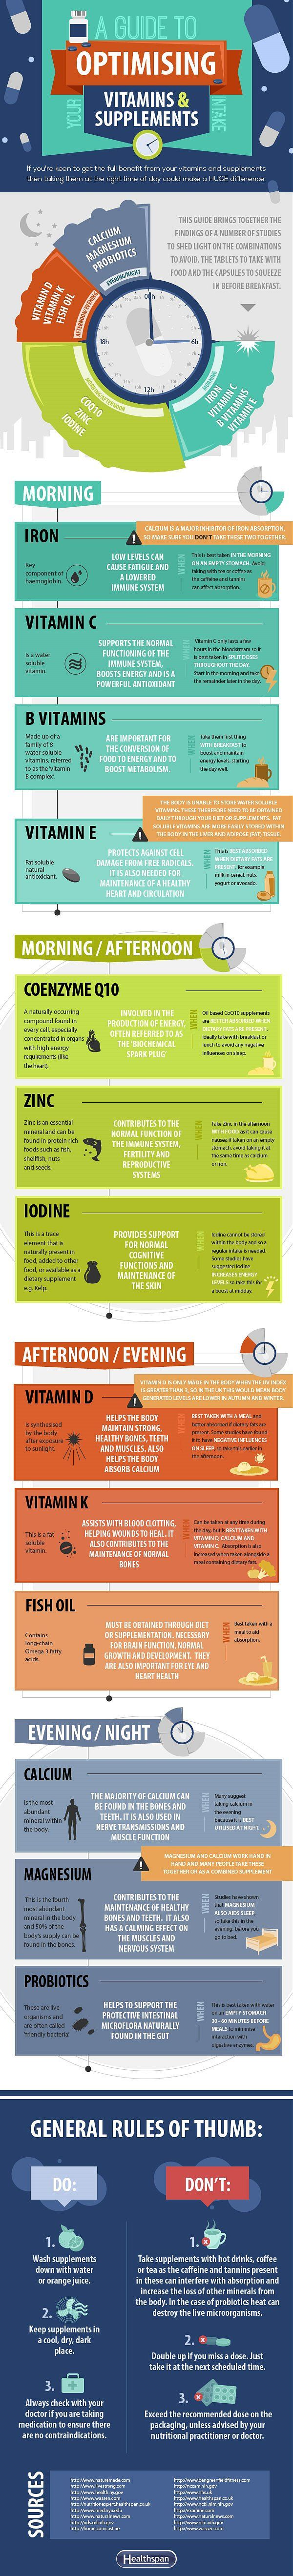 When to Take Vitamins & Supplements for Maximum Benefit [Infographic] - Living Green Magazine